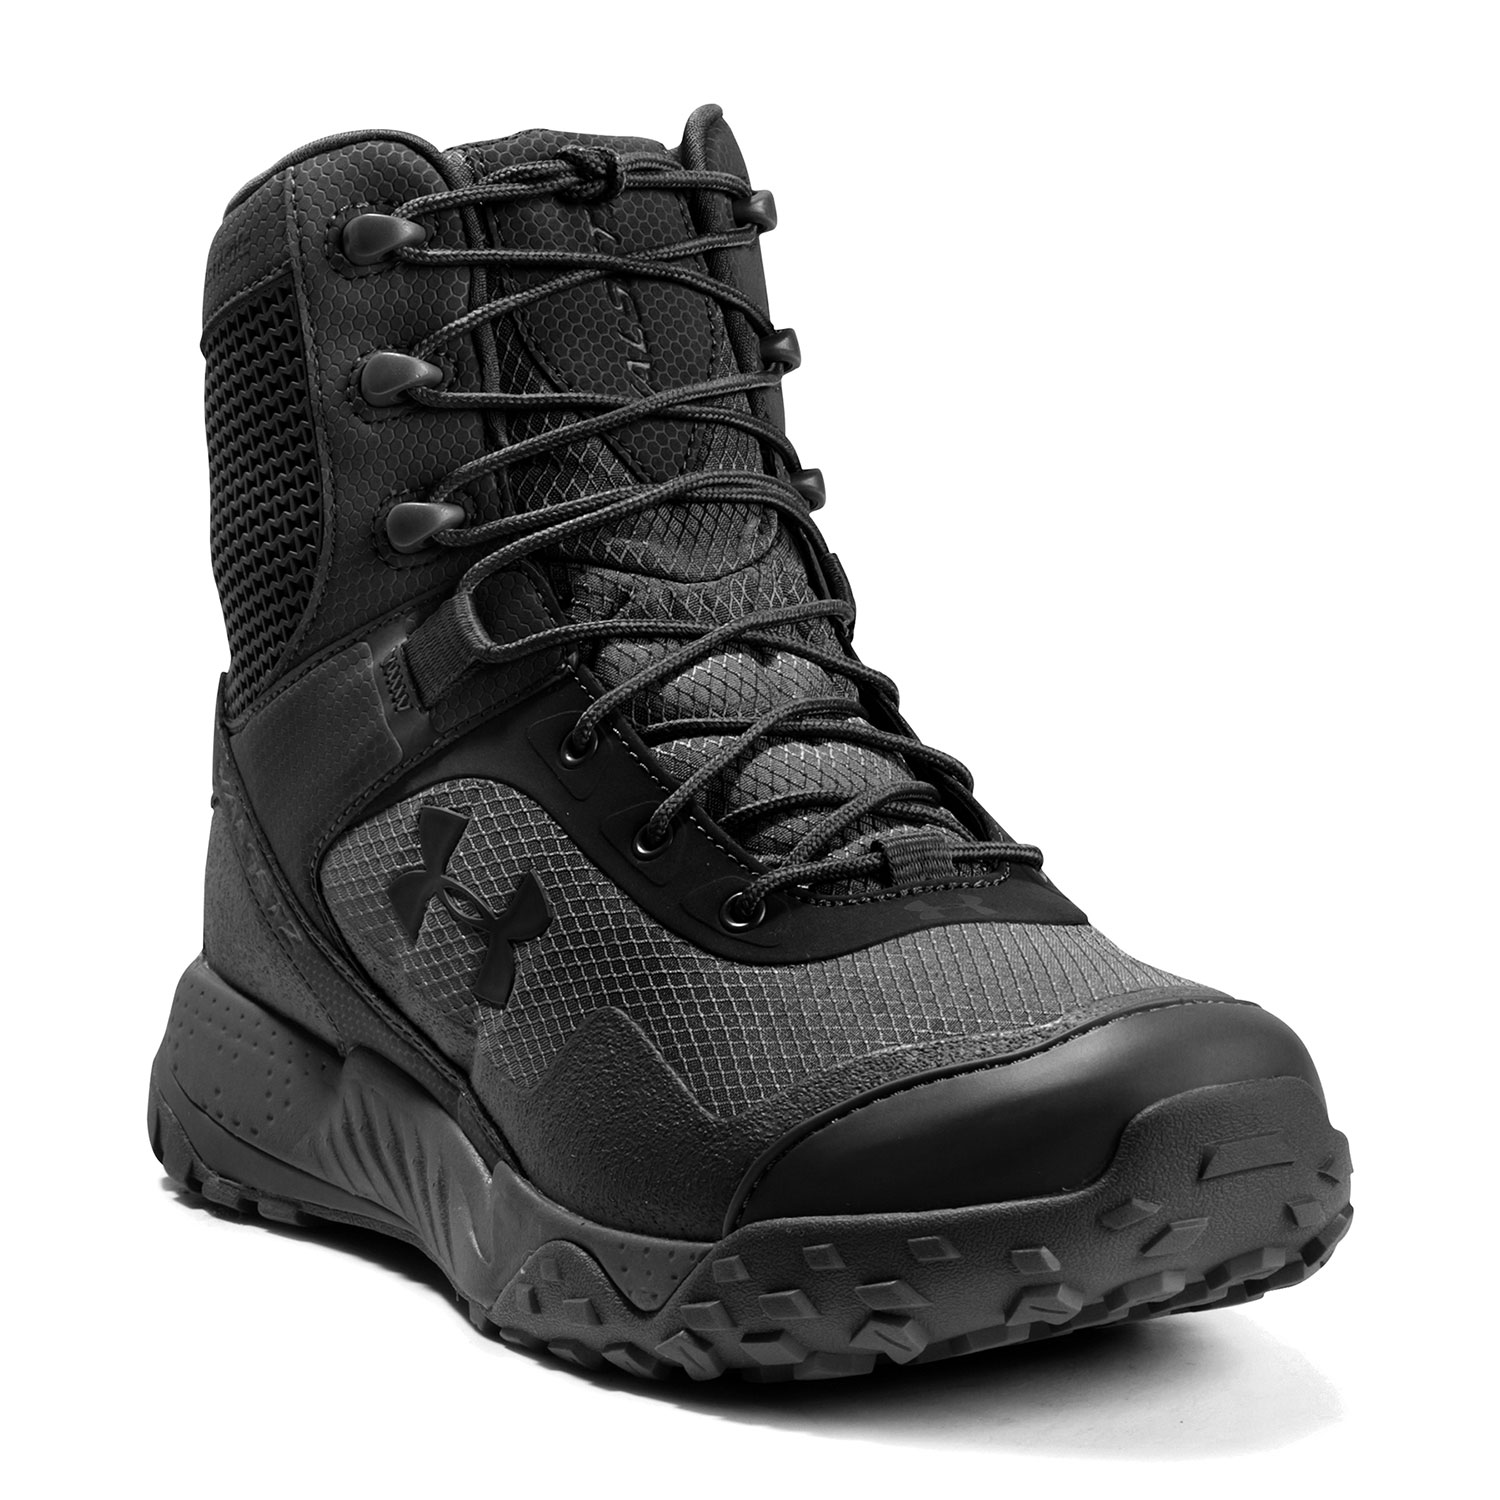 1 Year Review Under Armour Men's Stellar Tactical Boots